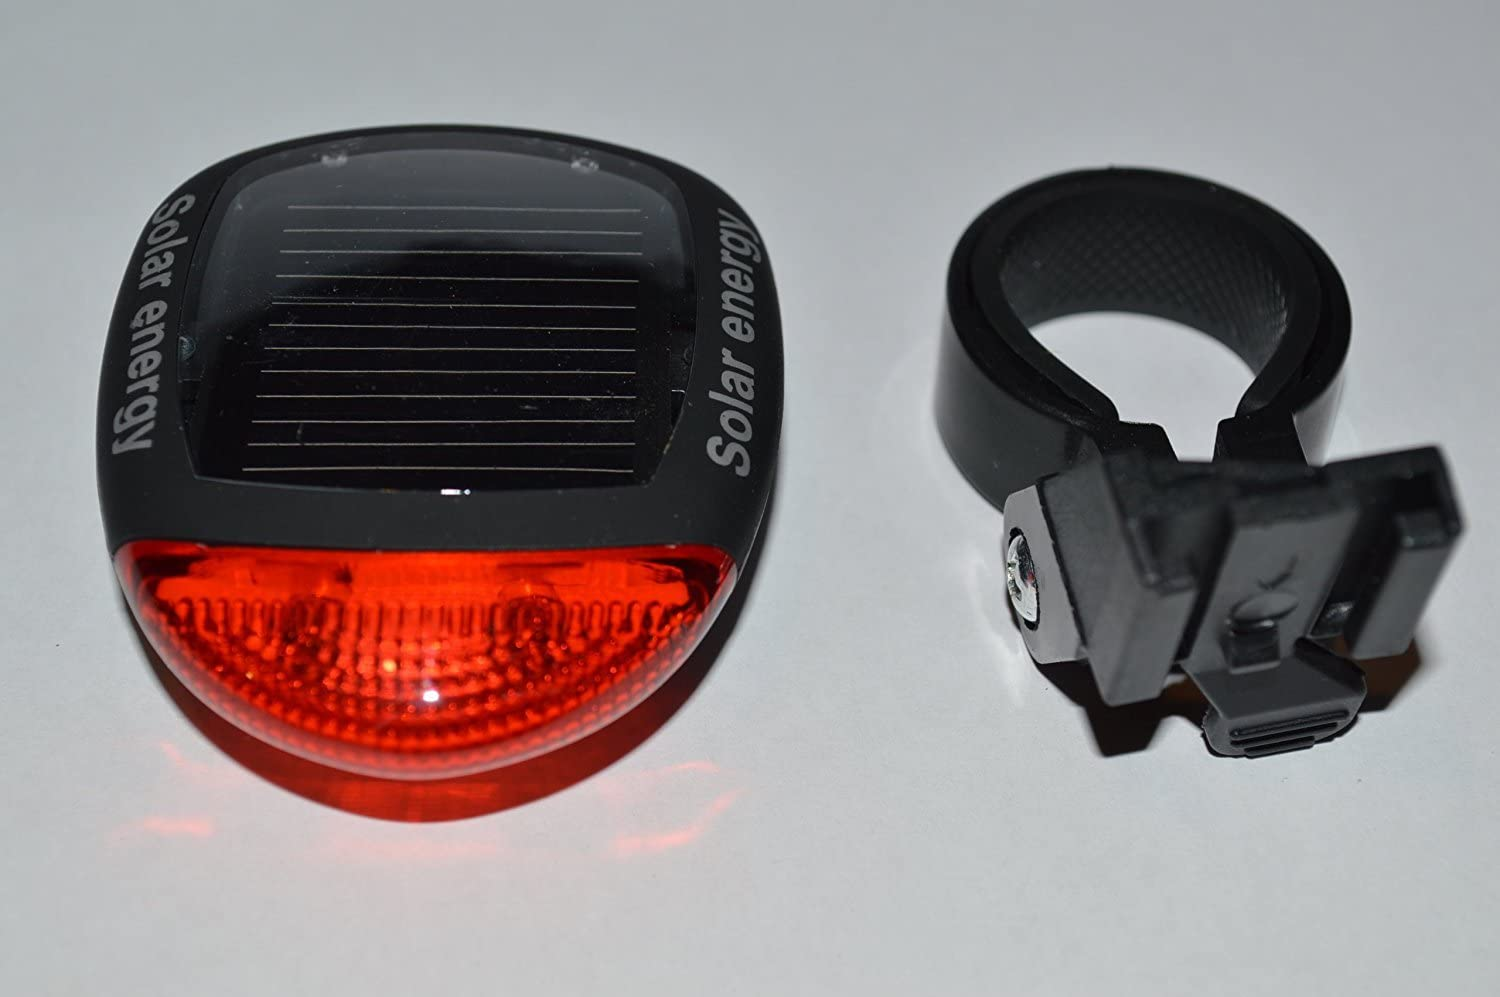 Solar Powered Light Cycling Bike Bicycle Tail Rear Taillight 2 LED Flashing Lamp